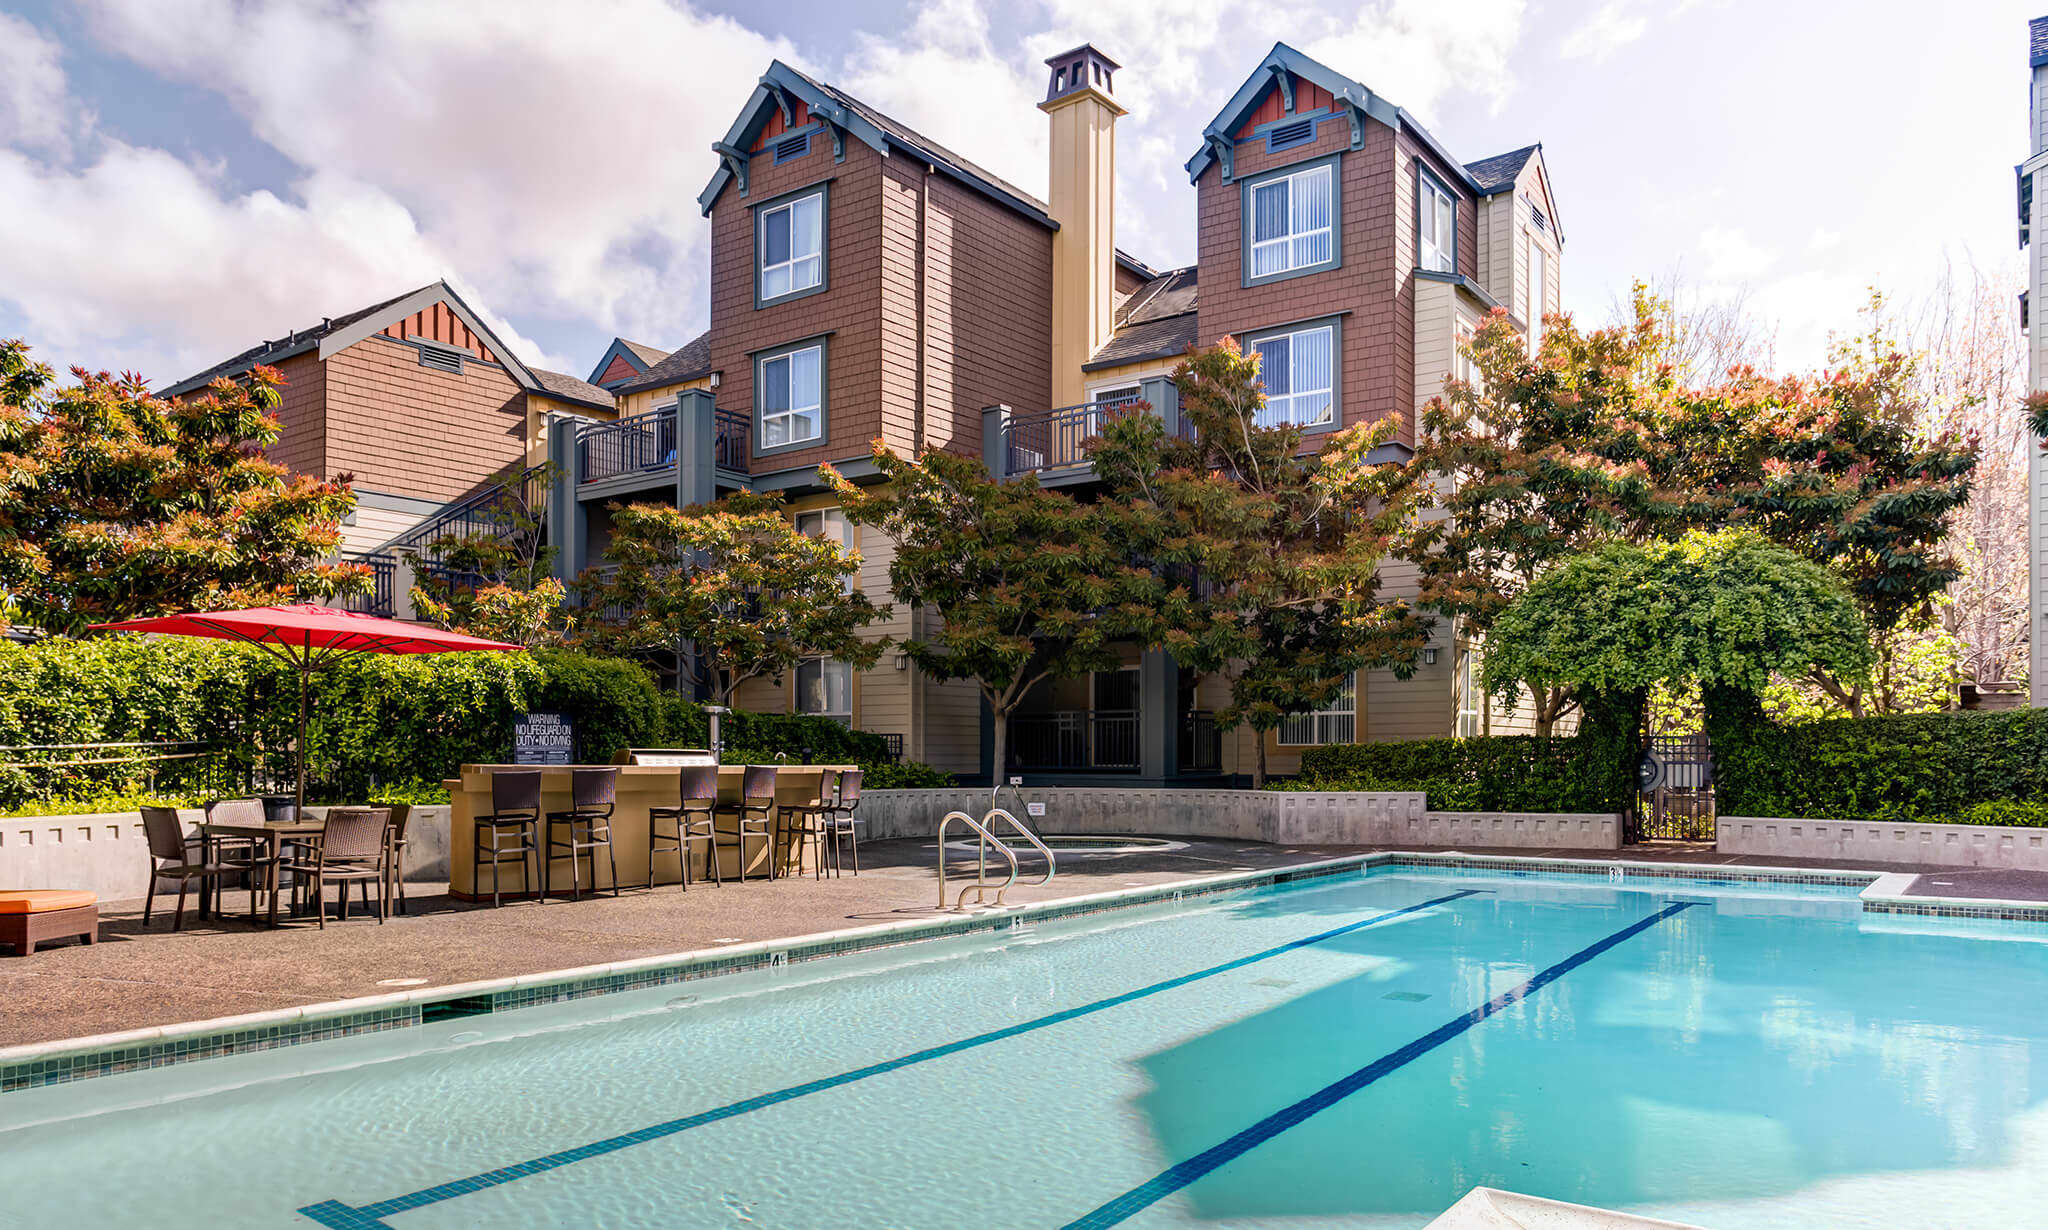 Kensington Place Apartments apartments in Sunnyvale CA to rent photo 1